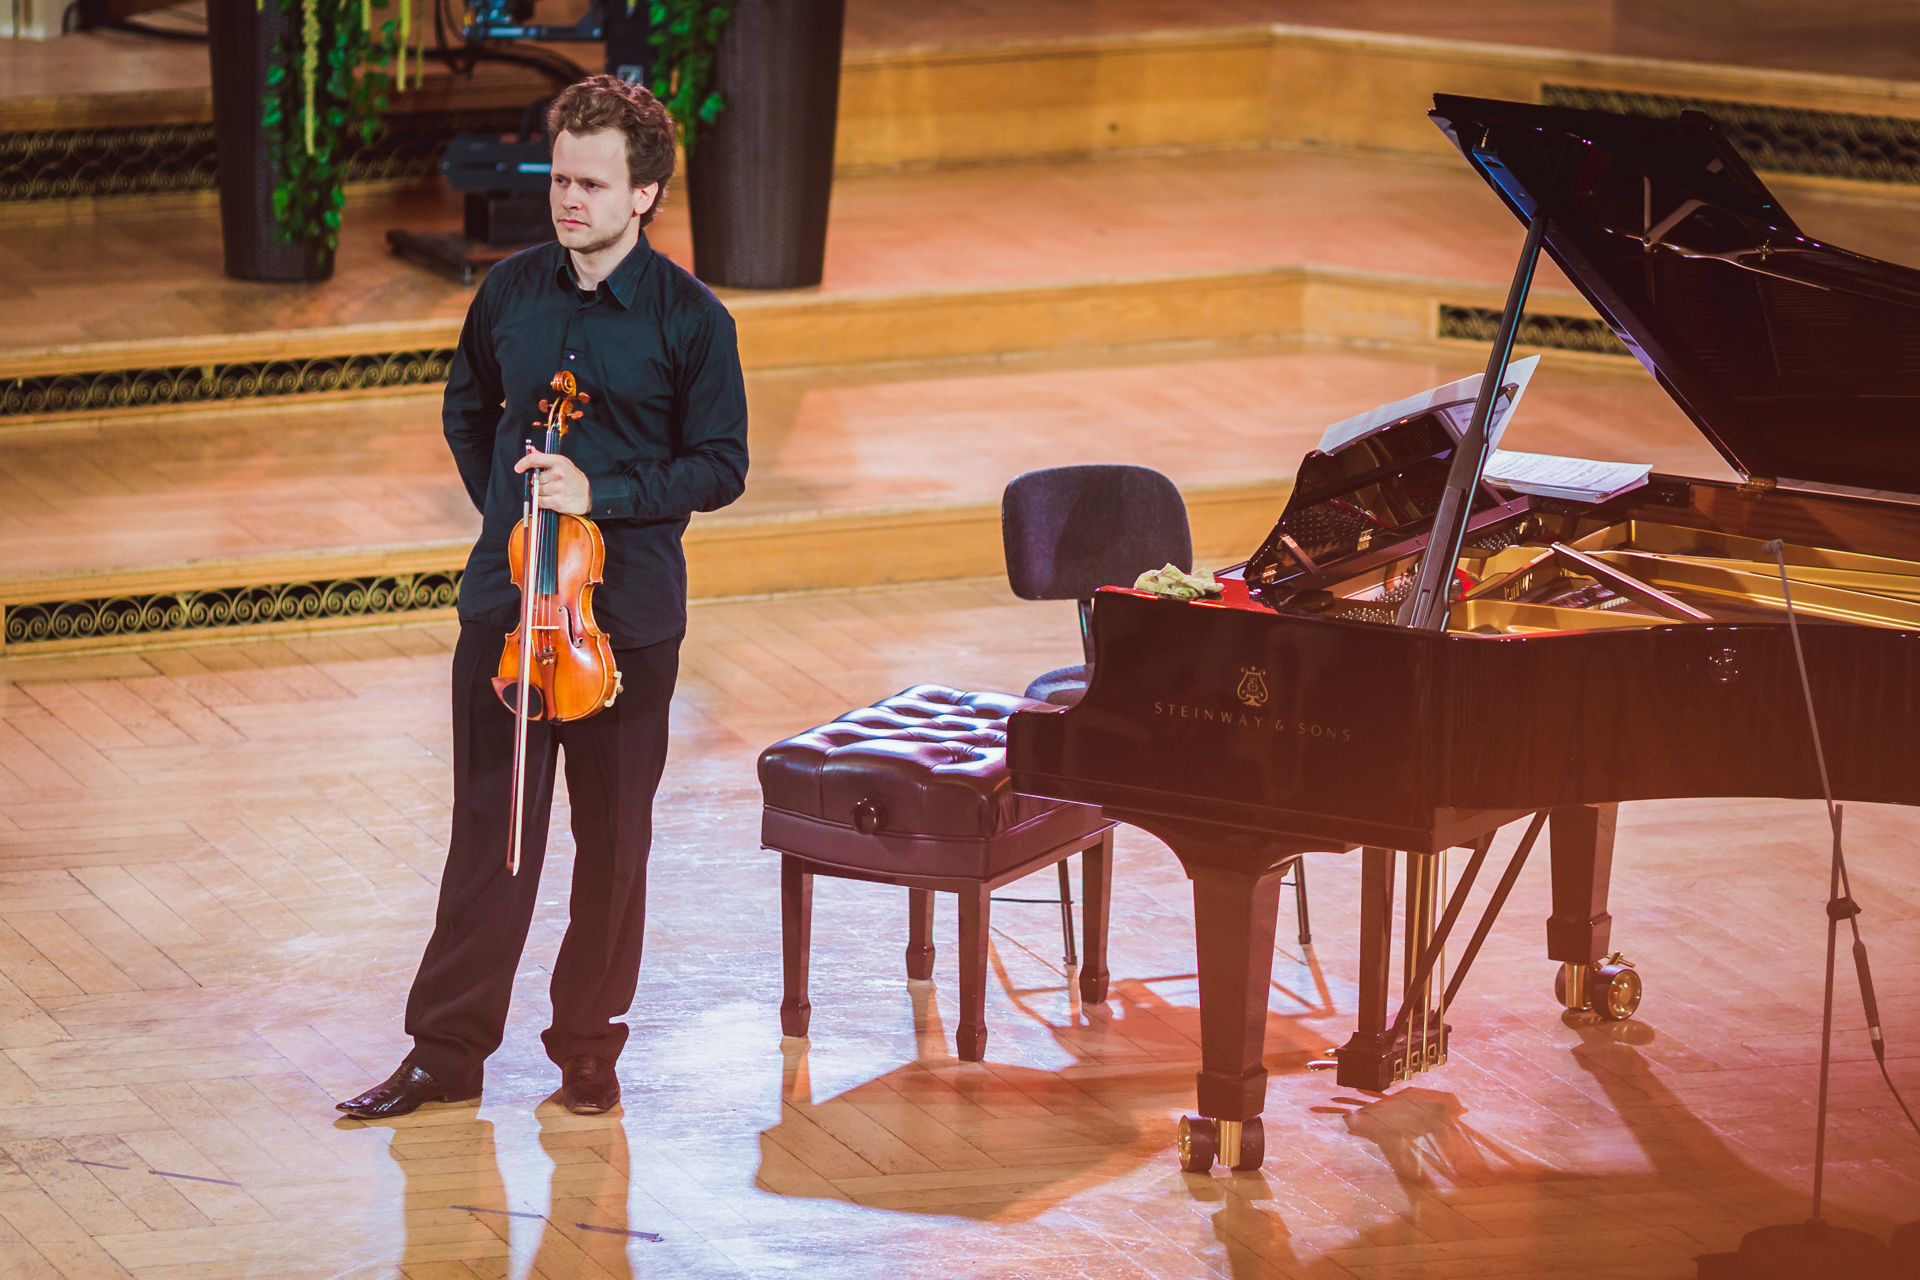 Arsenis Selalmazidis (Russia/Greece) - Stage 1 - 15th International H. Wieniawski Violin Competition STEREO